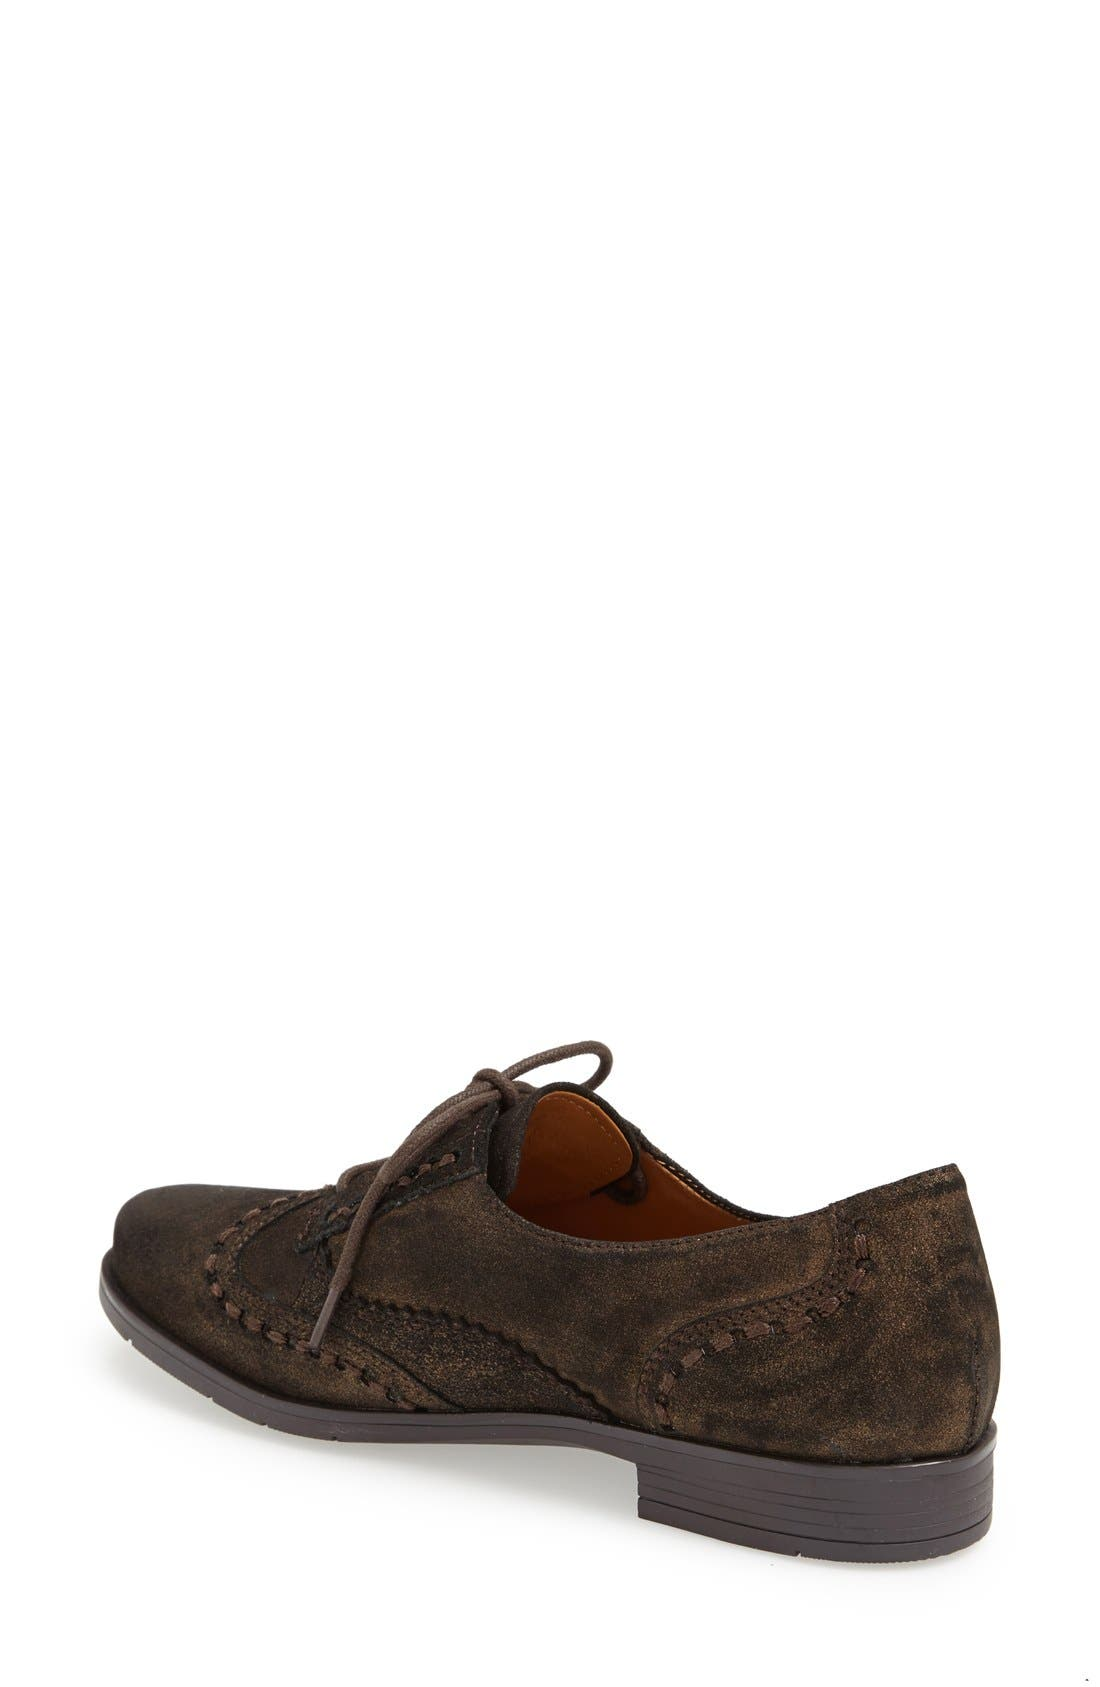 Alternate Image 2  - Earthies® 'Lisbon' Pearlized Suede Lace-Up Flat (Women)